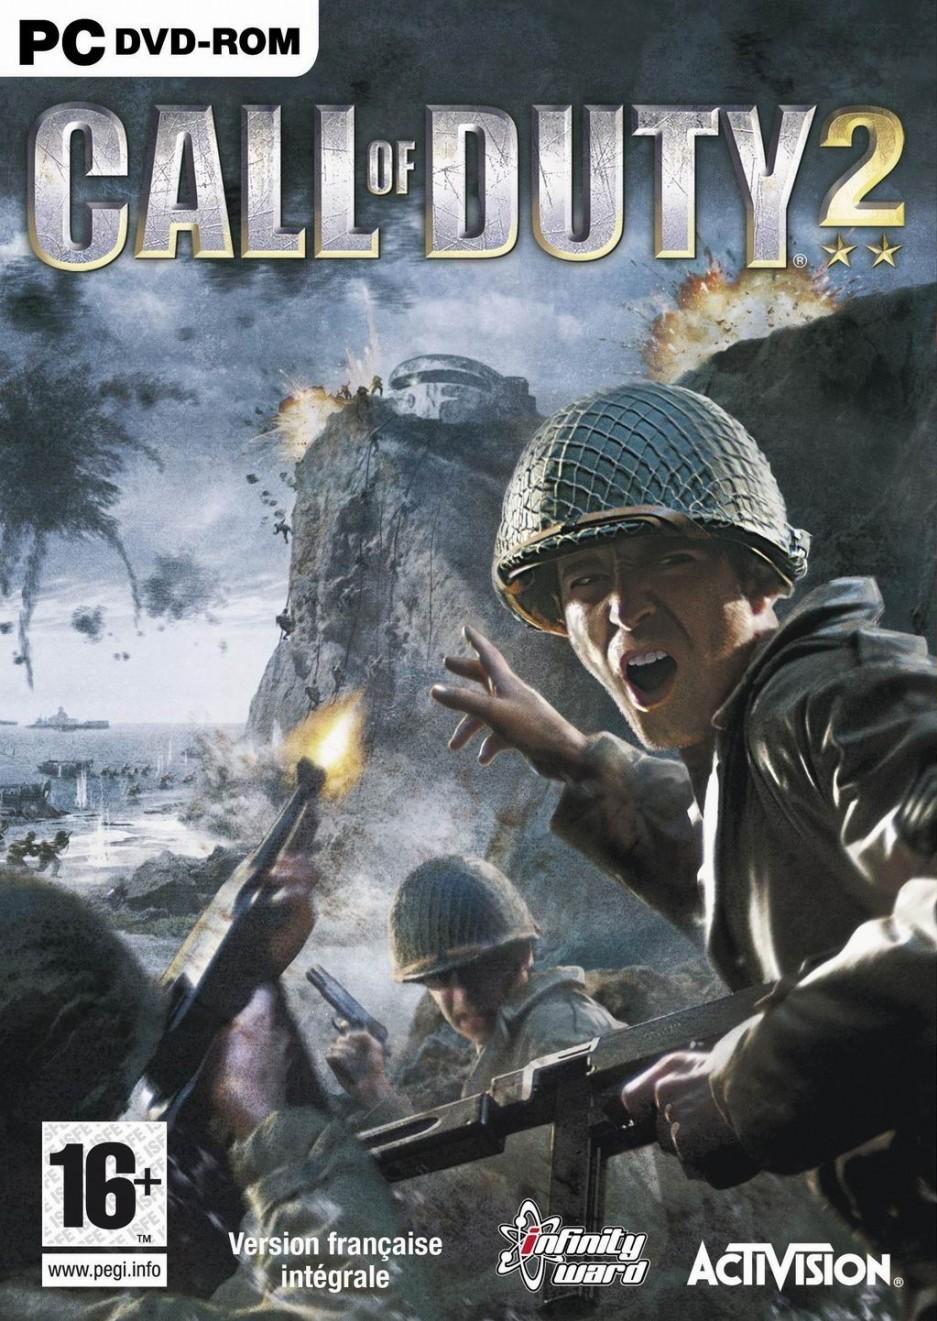 [PC] Call of Duty 2 Game Save | Save Game File Download